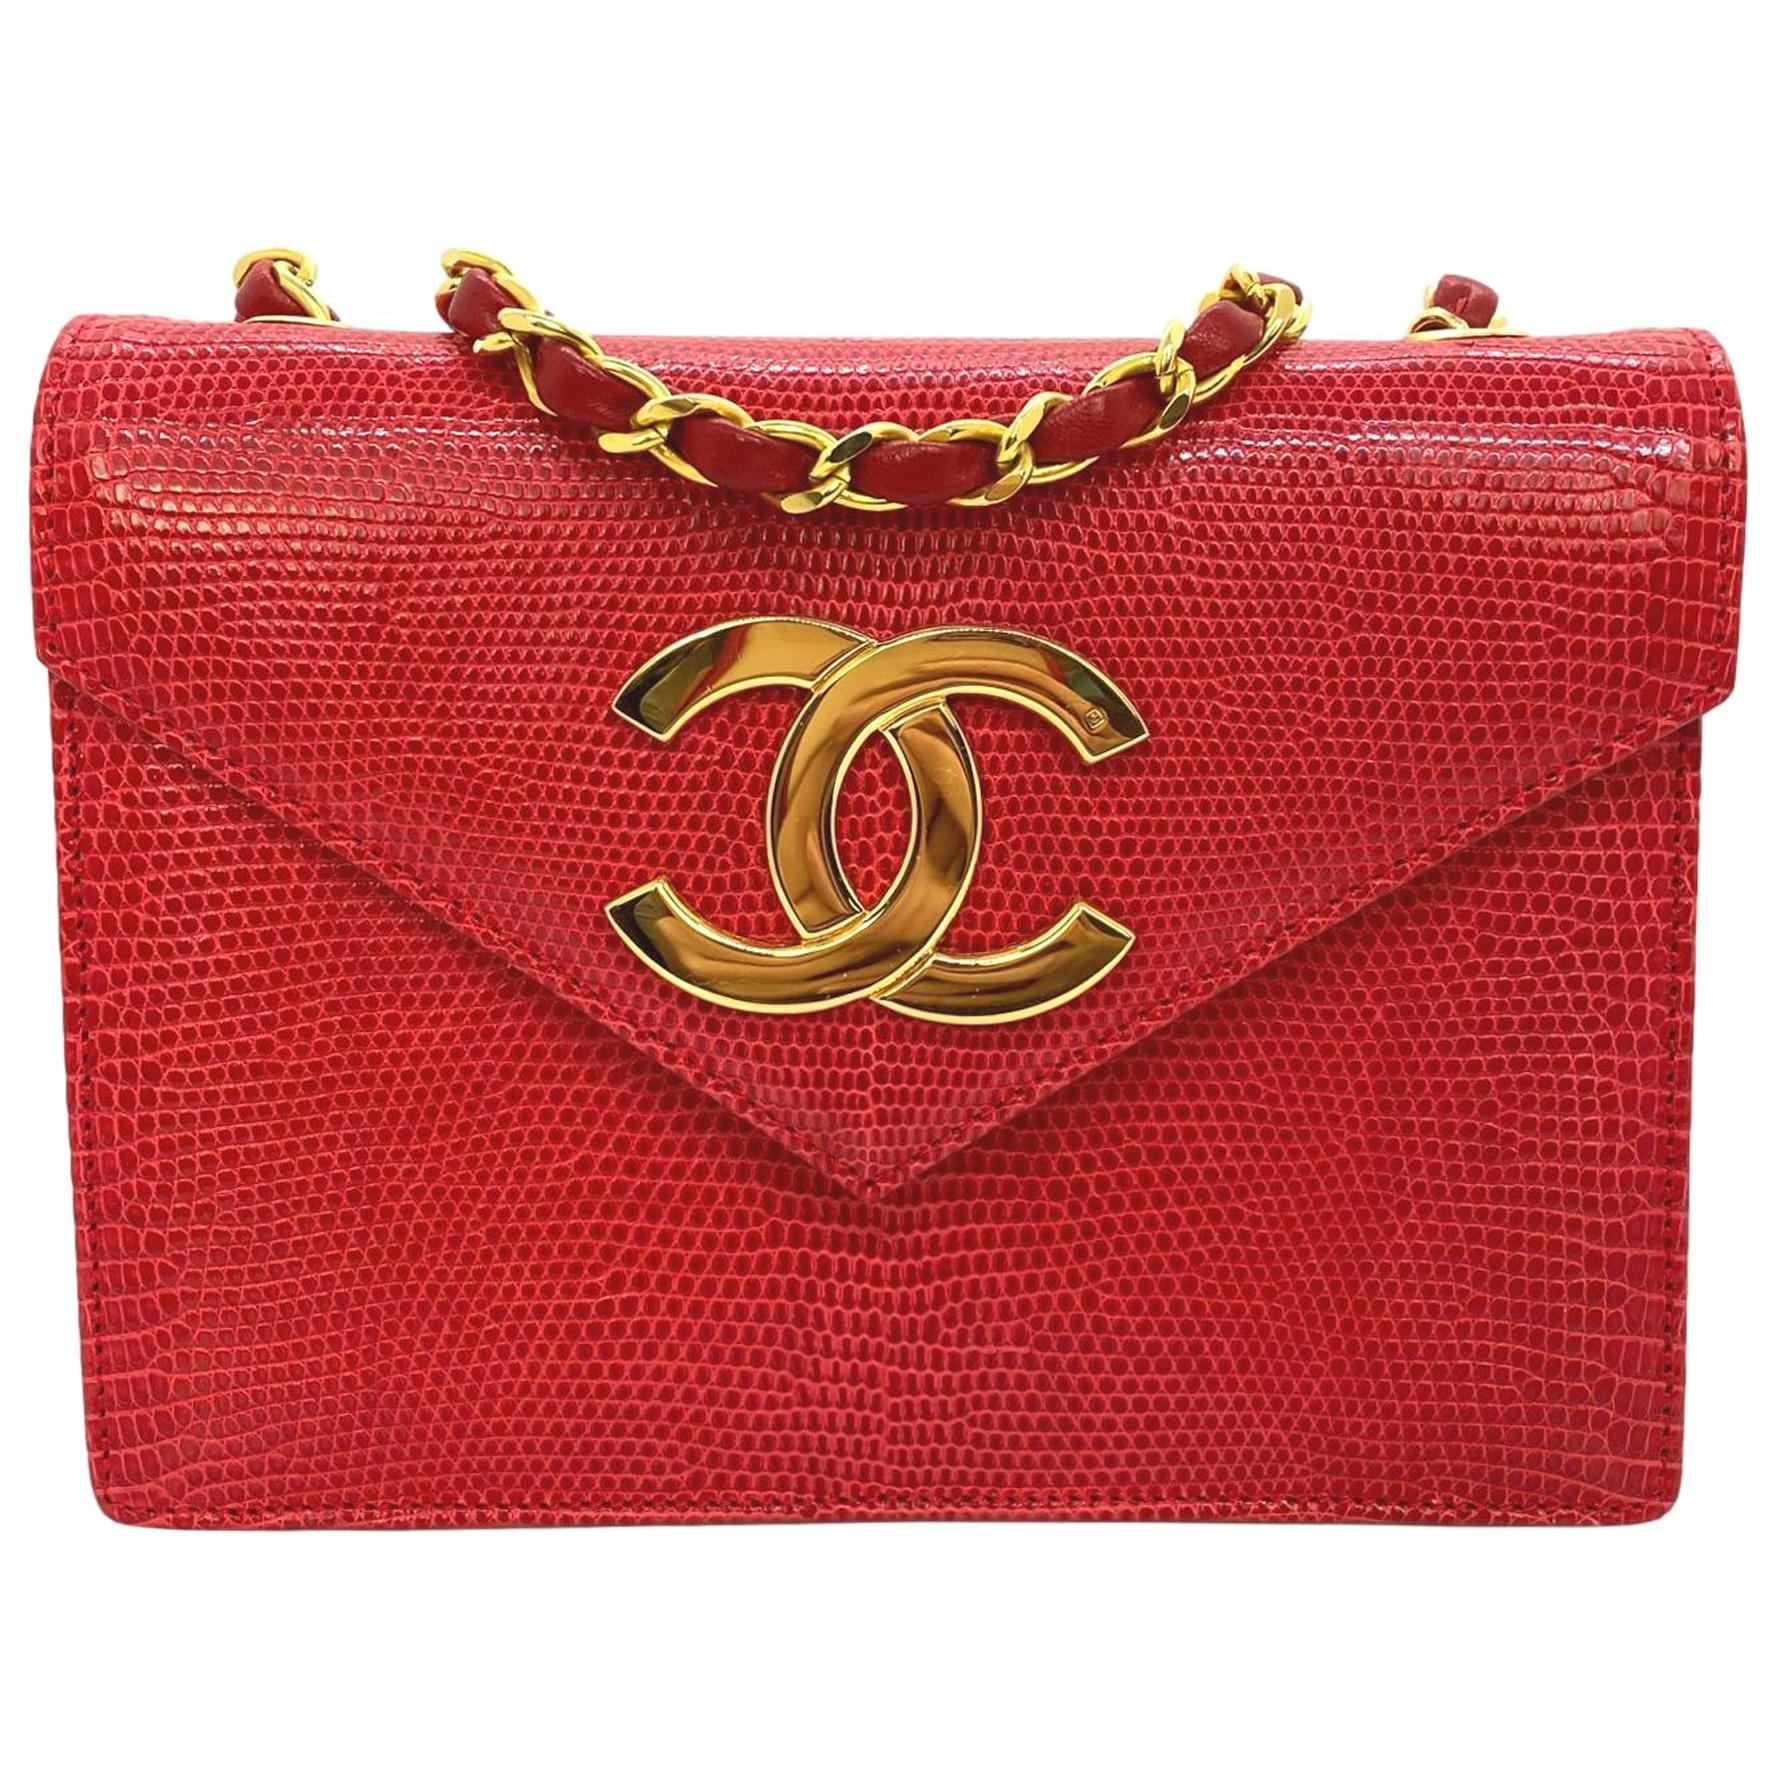 Chanel Vintage Red Lizard Envelope Cross Body Flap Bag with Gold Hardware